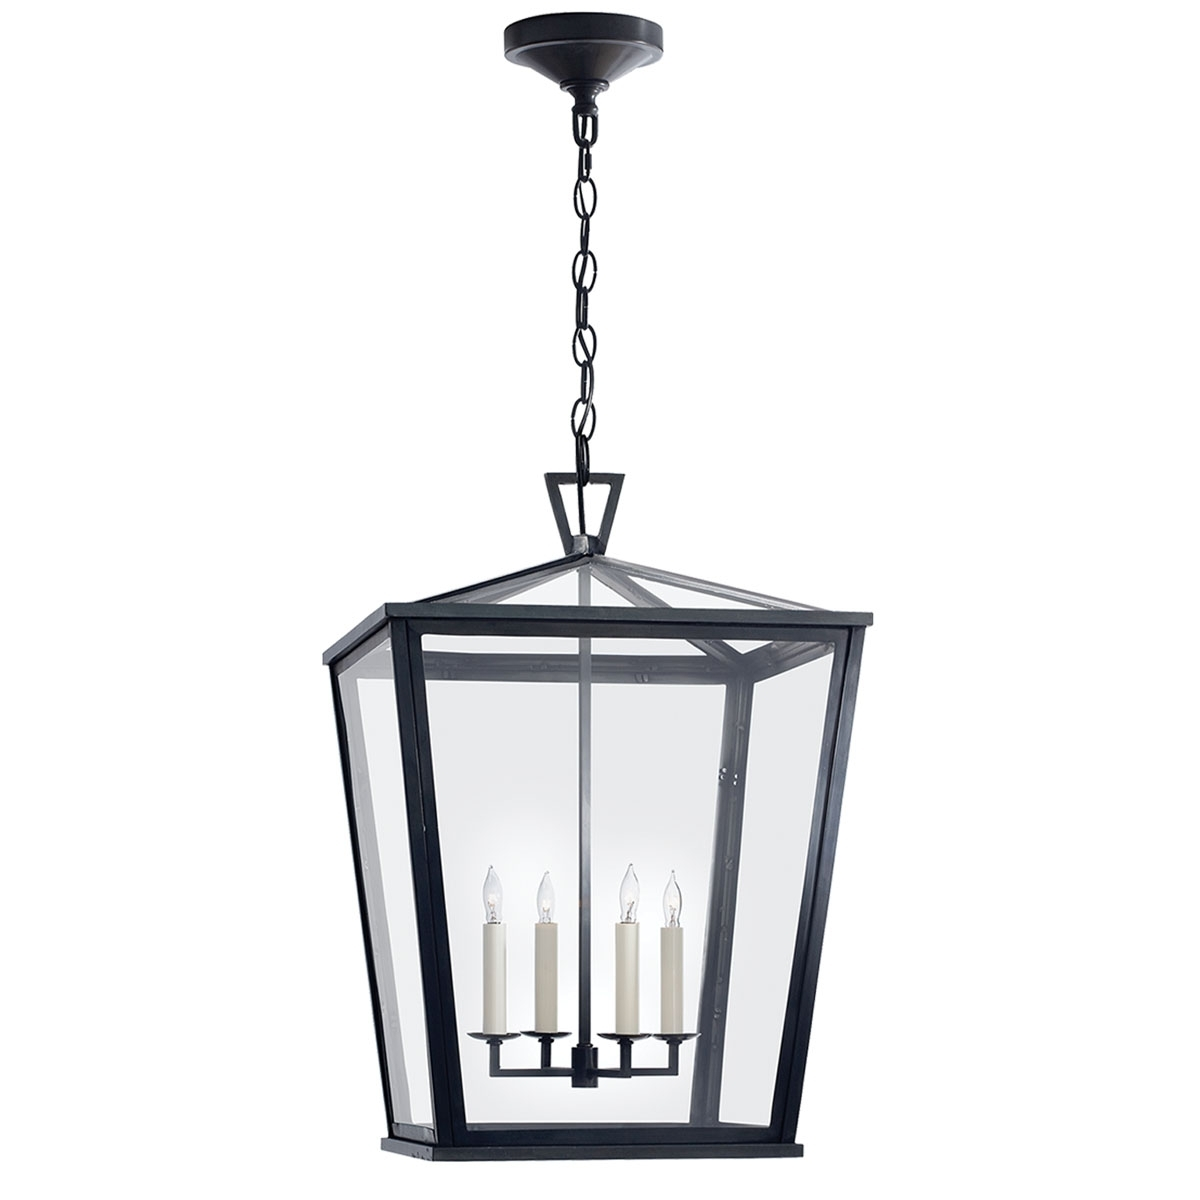 Charming Large Outdoor Hanging Chandelier 23 Astonishing Mini Pertaining To Latest Large Outdoor Electric Lanterns (Gallery 5 of 20)